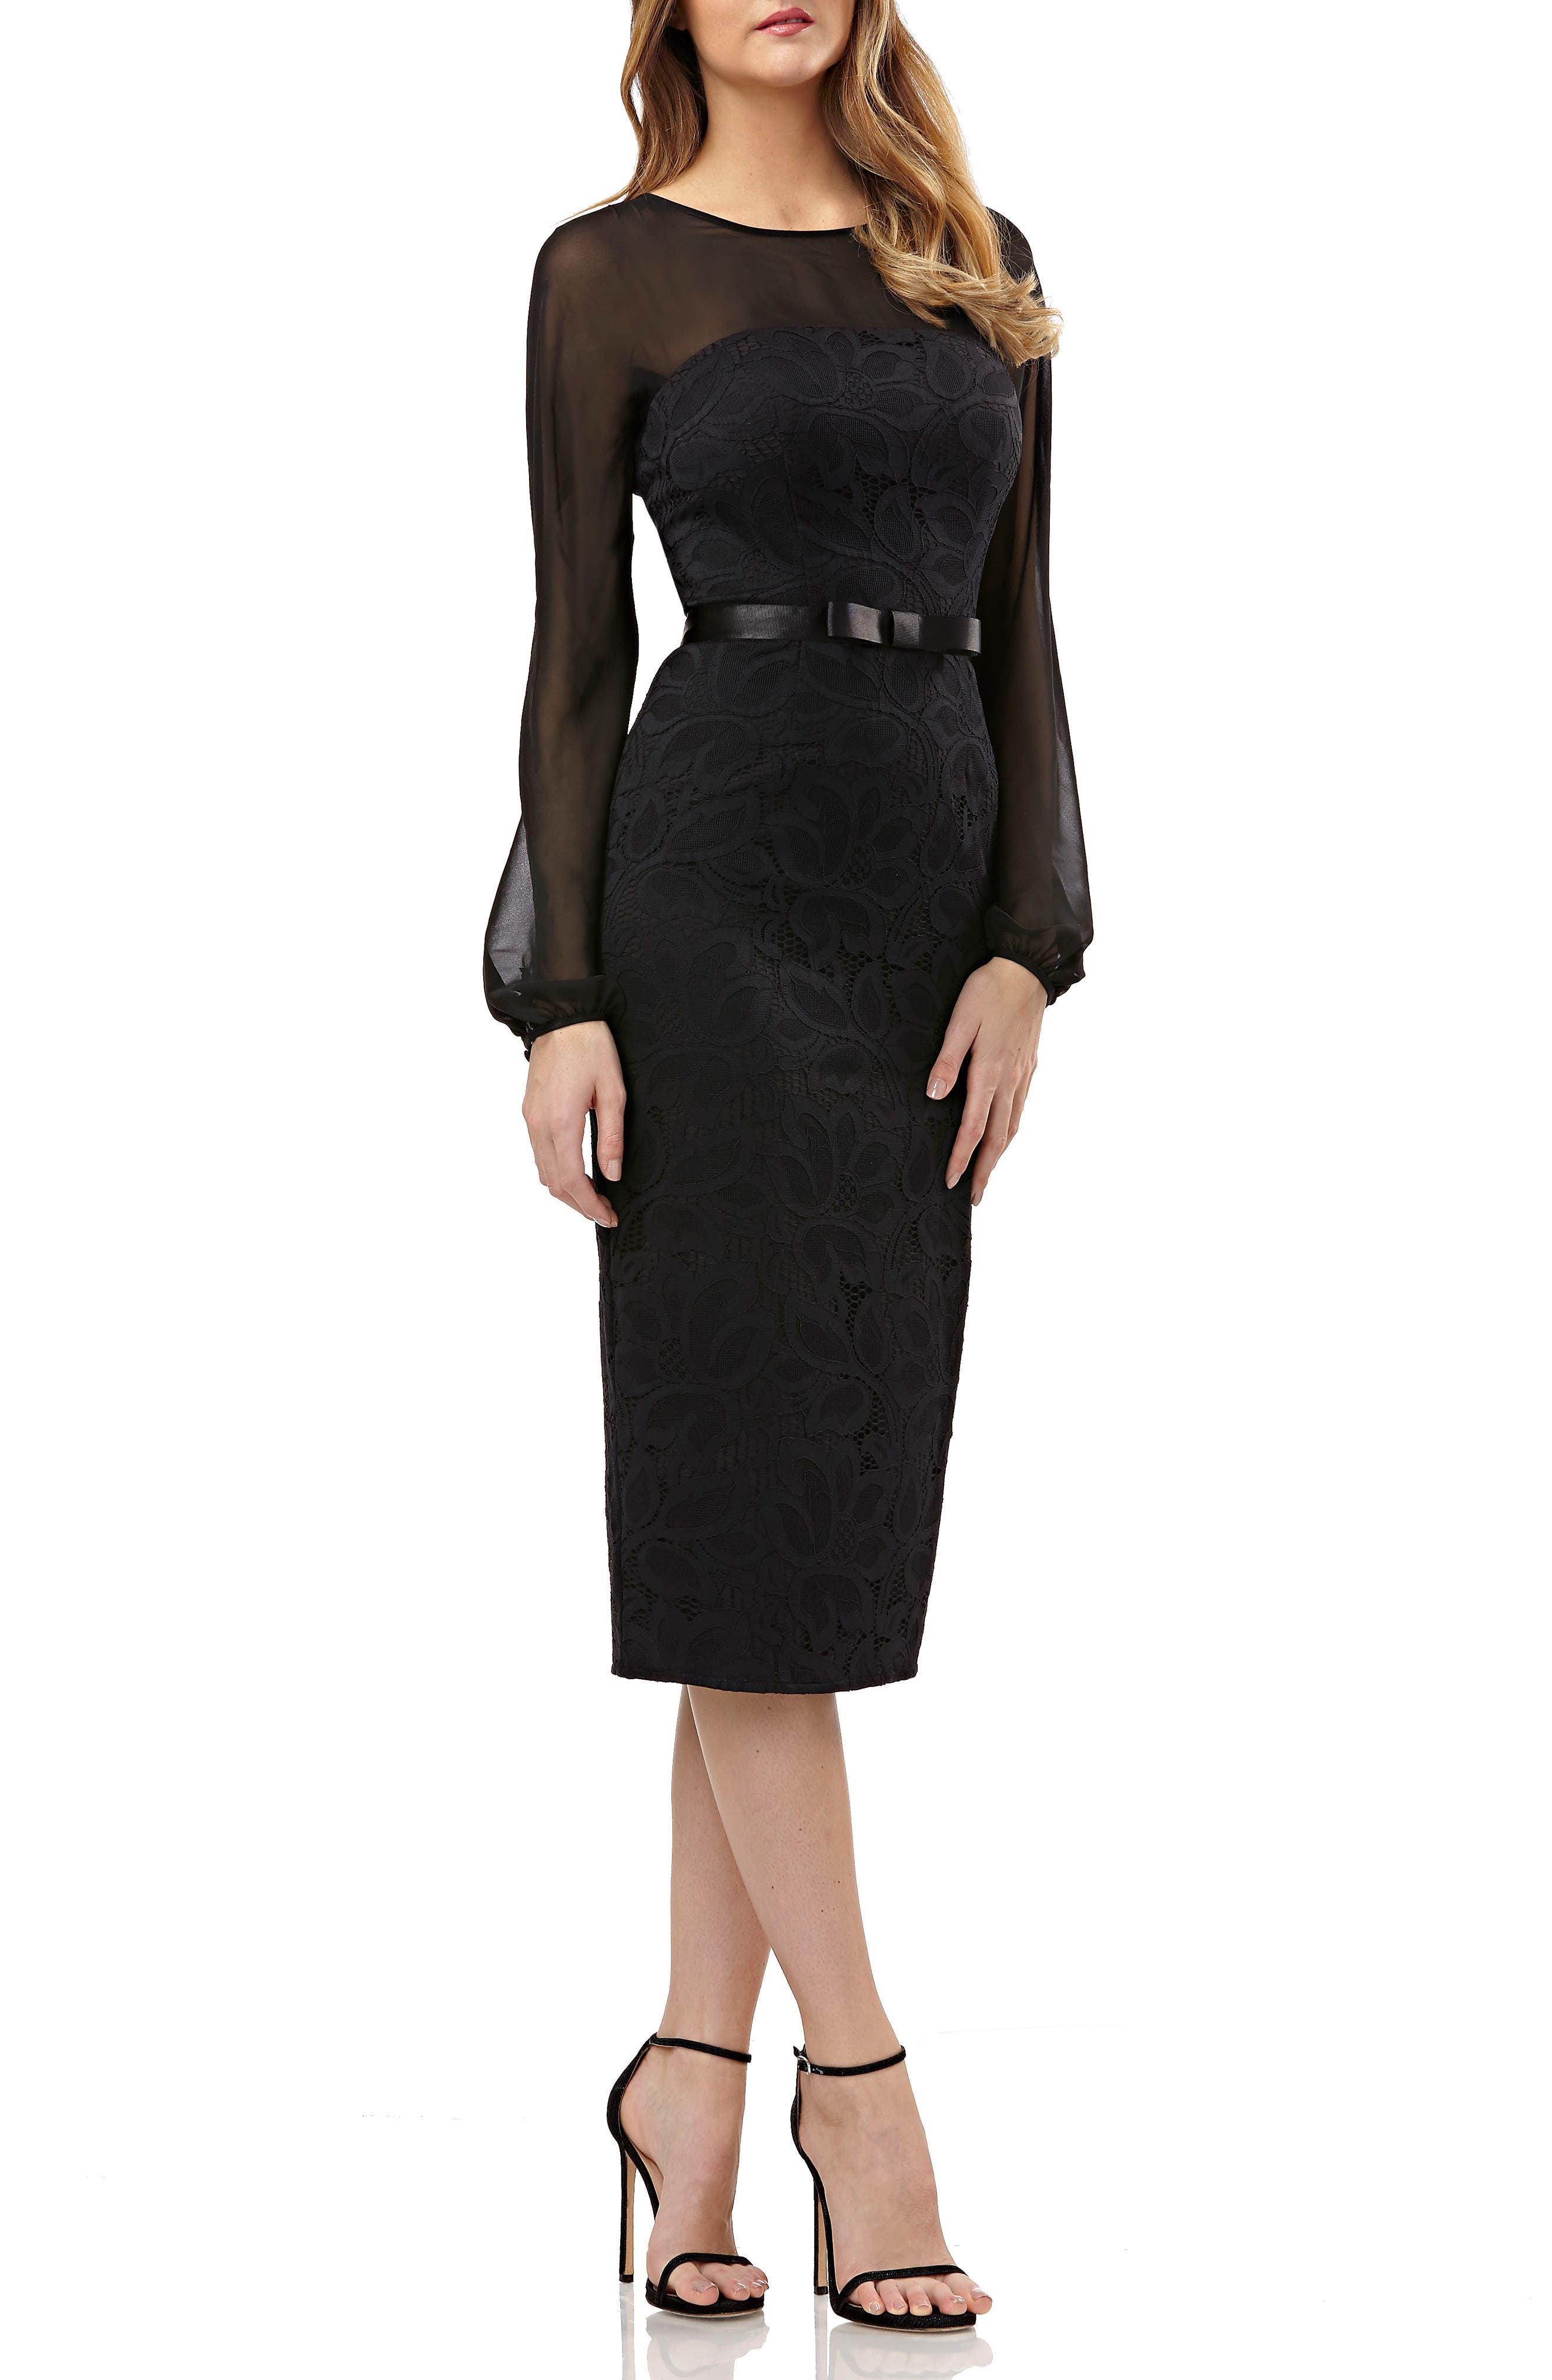 KAY UNGER LONG-SLEEVE BELTED DRESS IN LACE & CHIFFON